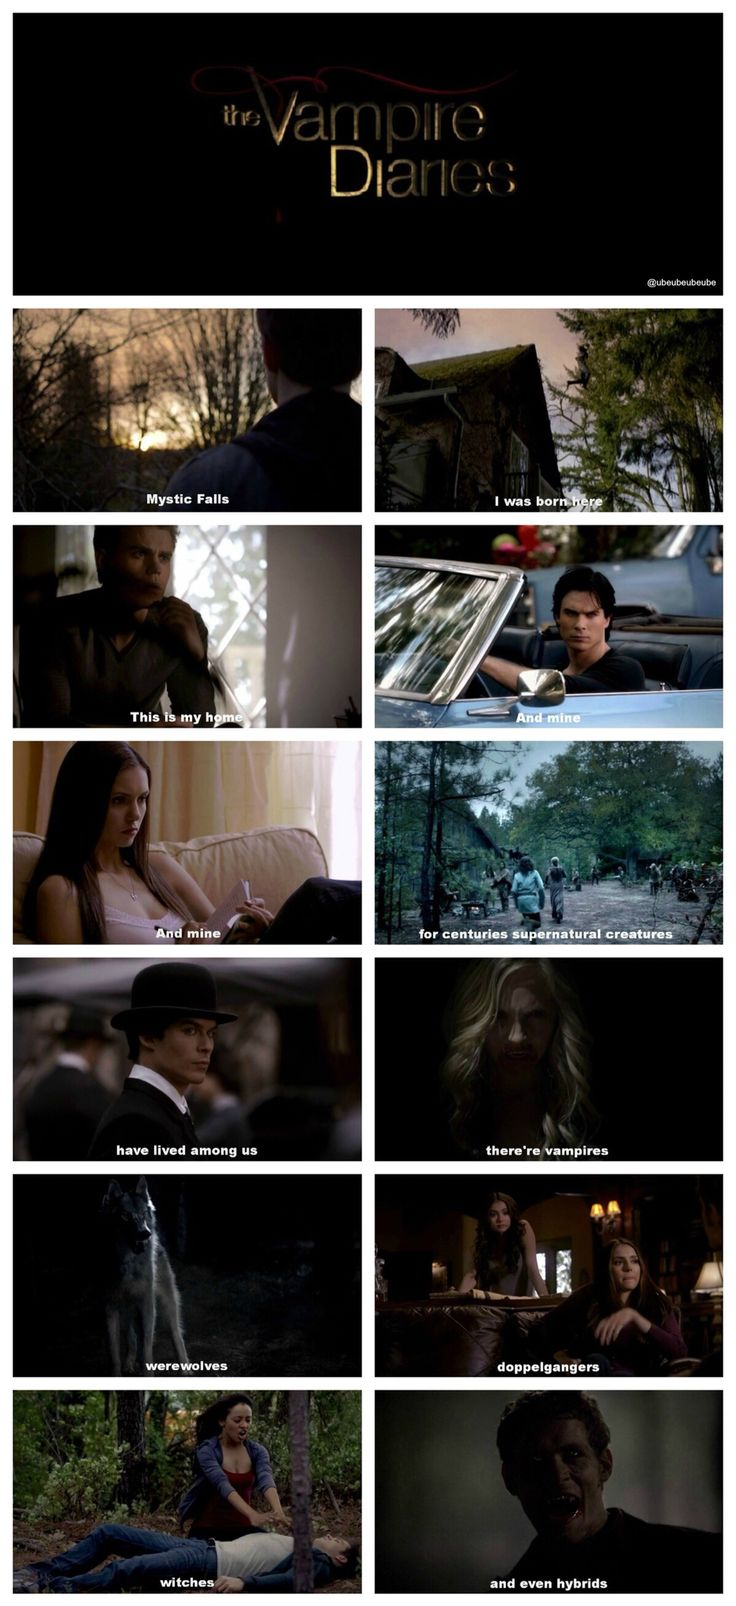 the vampire diaries mistic falls, i was born here this is my home and mine and mine, for centuries supernatural creatures have lived among us there's vampire wear wolf doppelgänger witches and even hybrids❤️